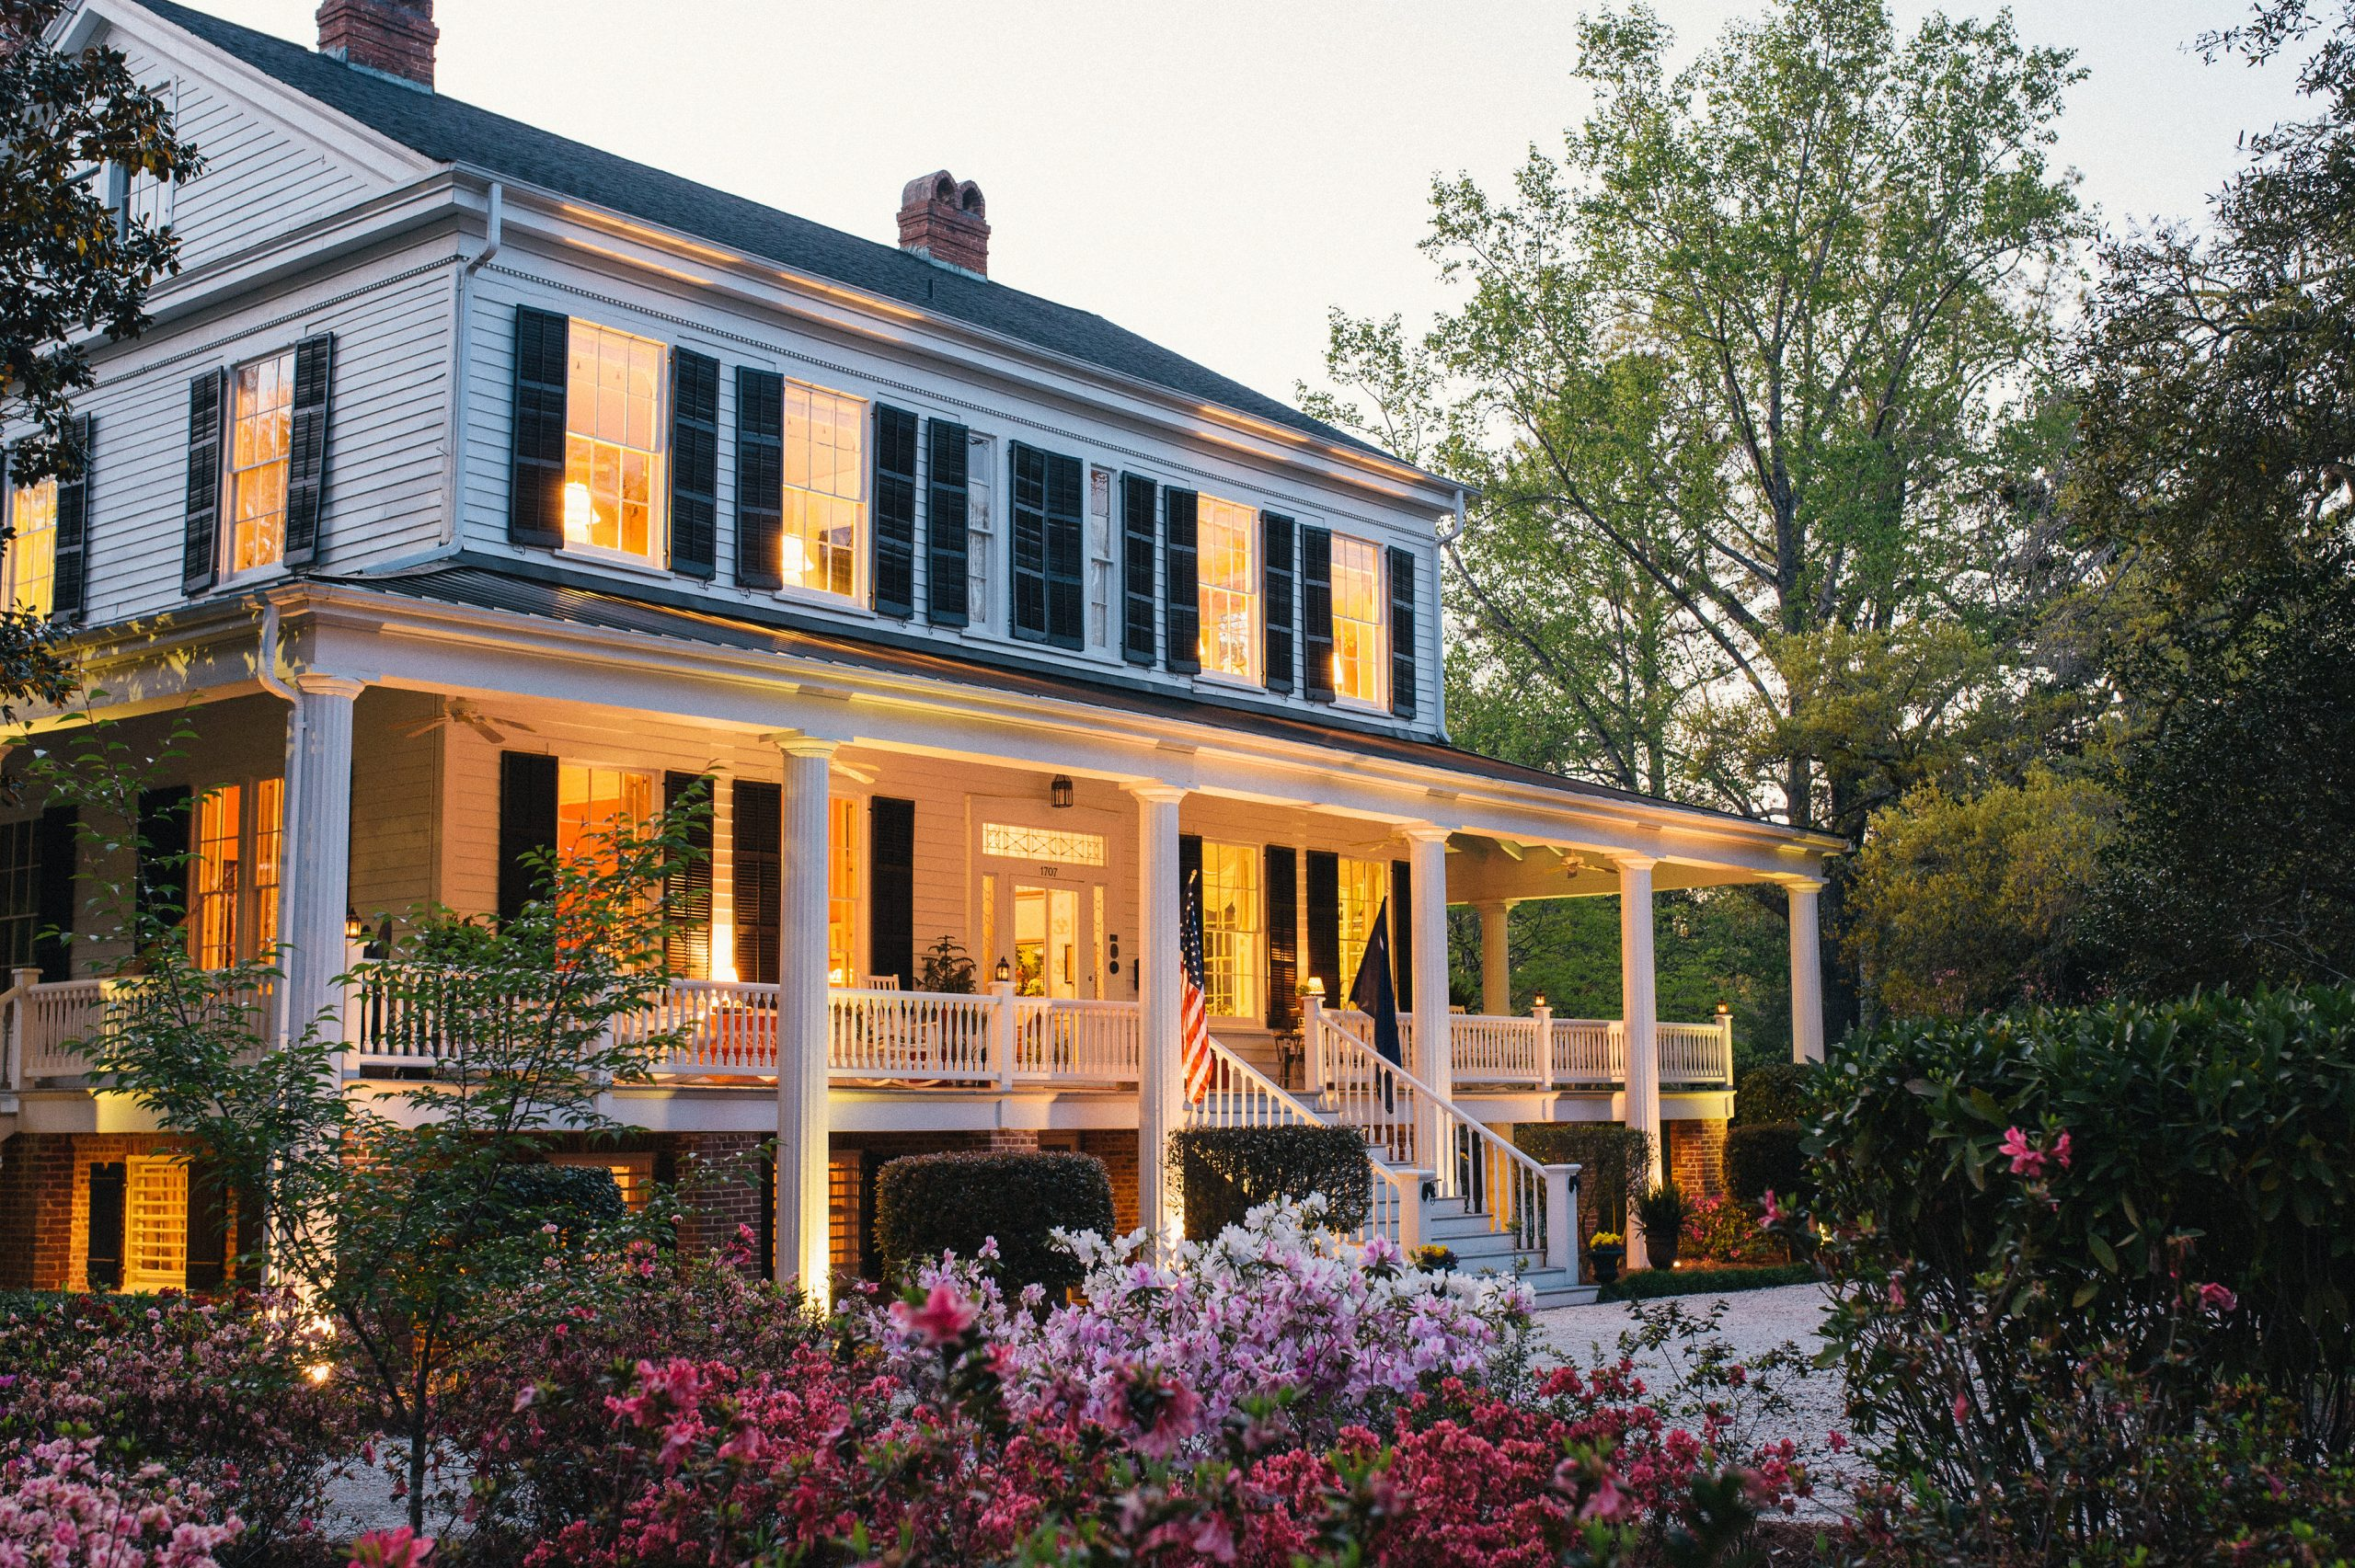 BLOOMSBURY INN TOP 25 B&BS IN THE US